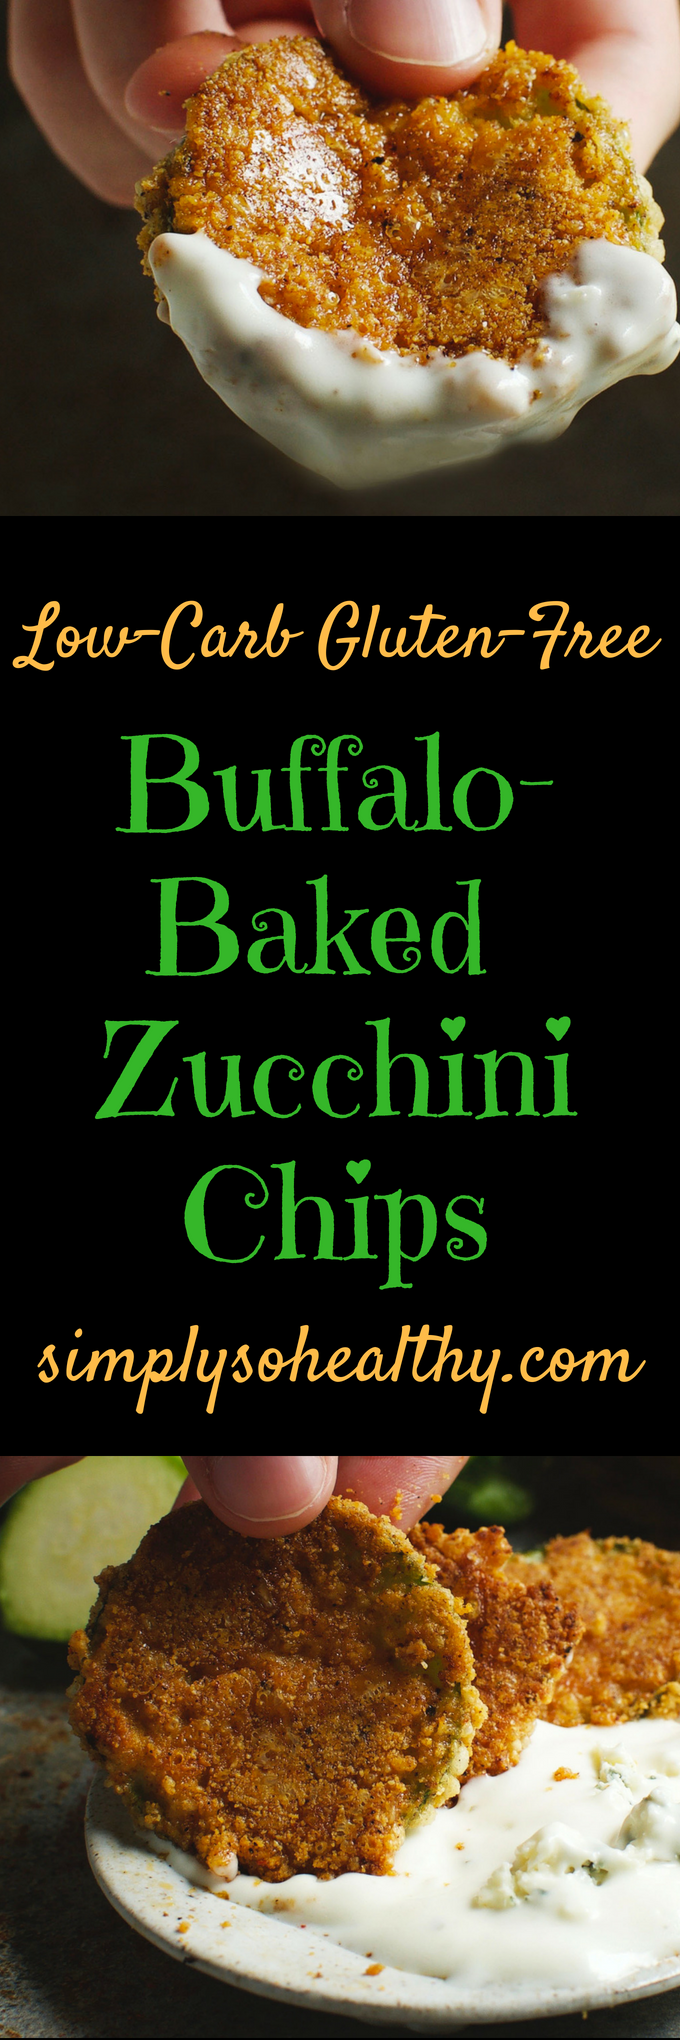 Low-Carb Buffalo Baked Zucchini Chips - Simply So Healthy